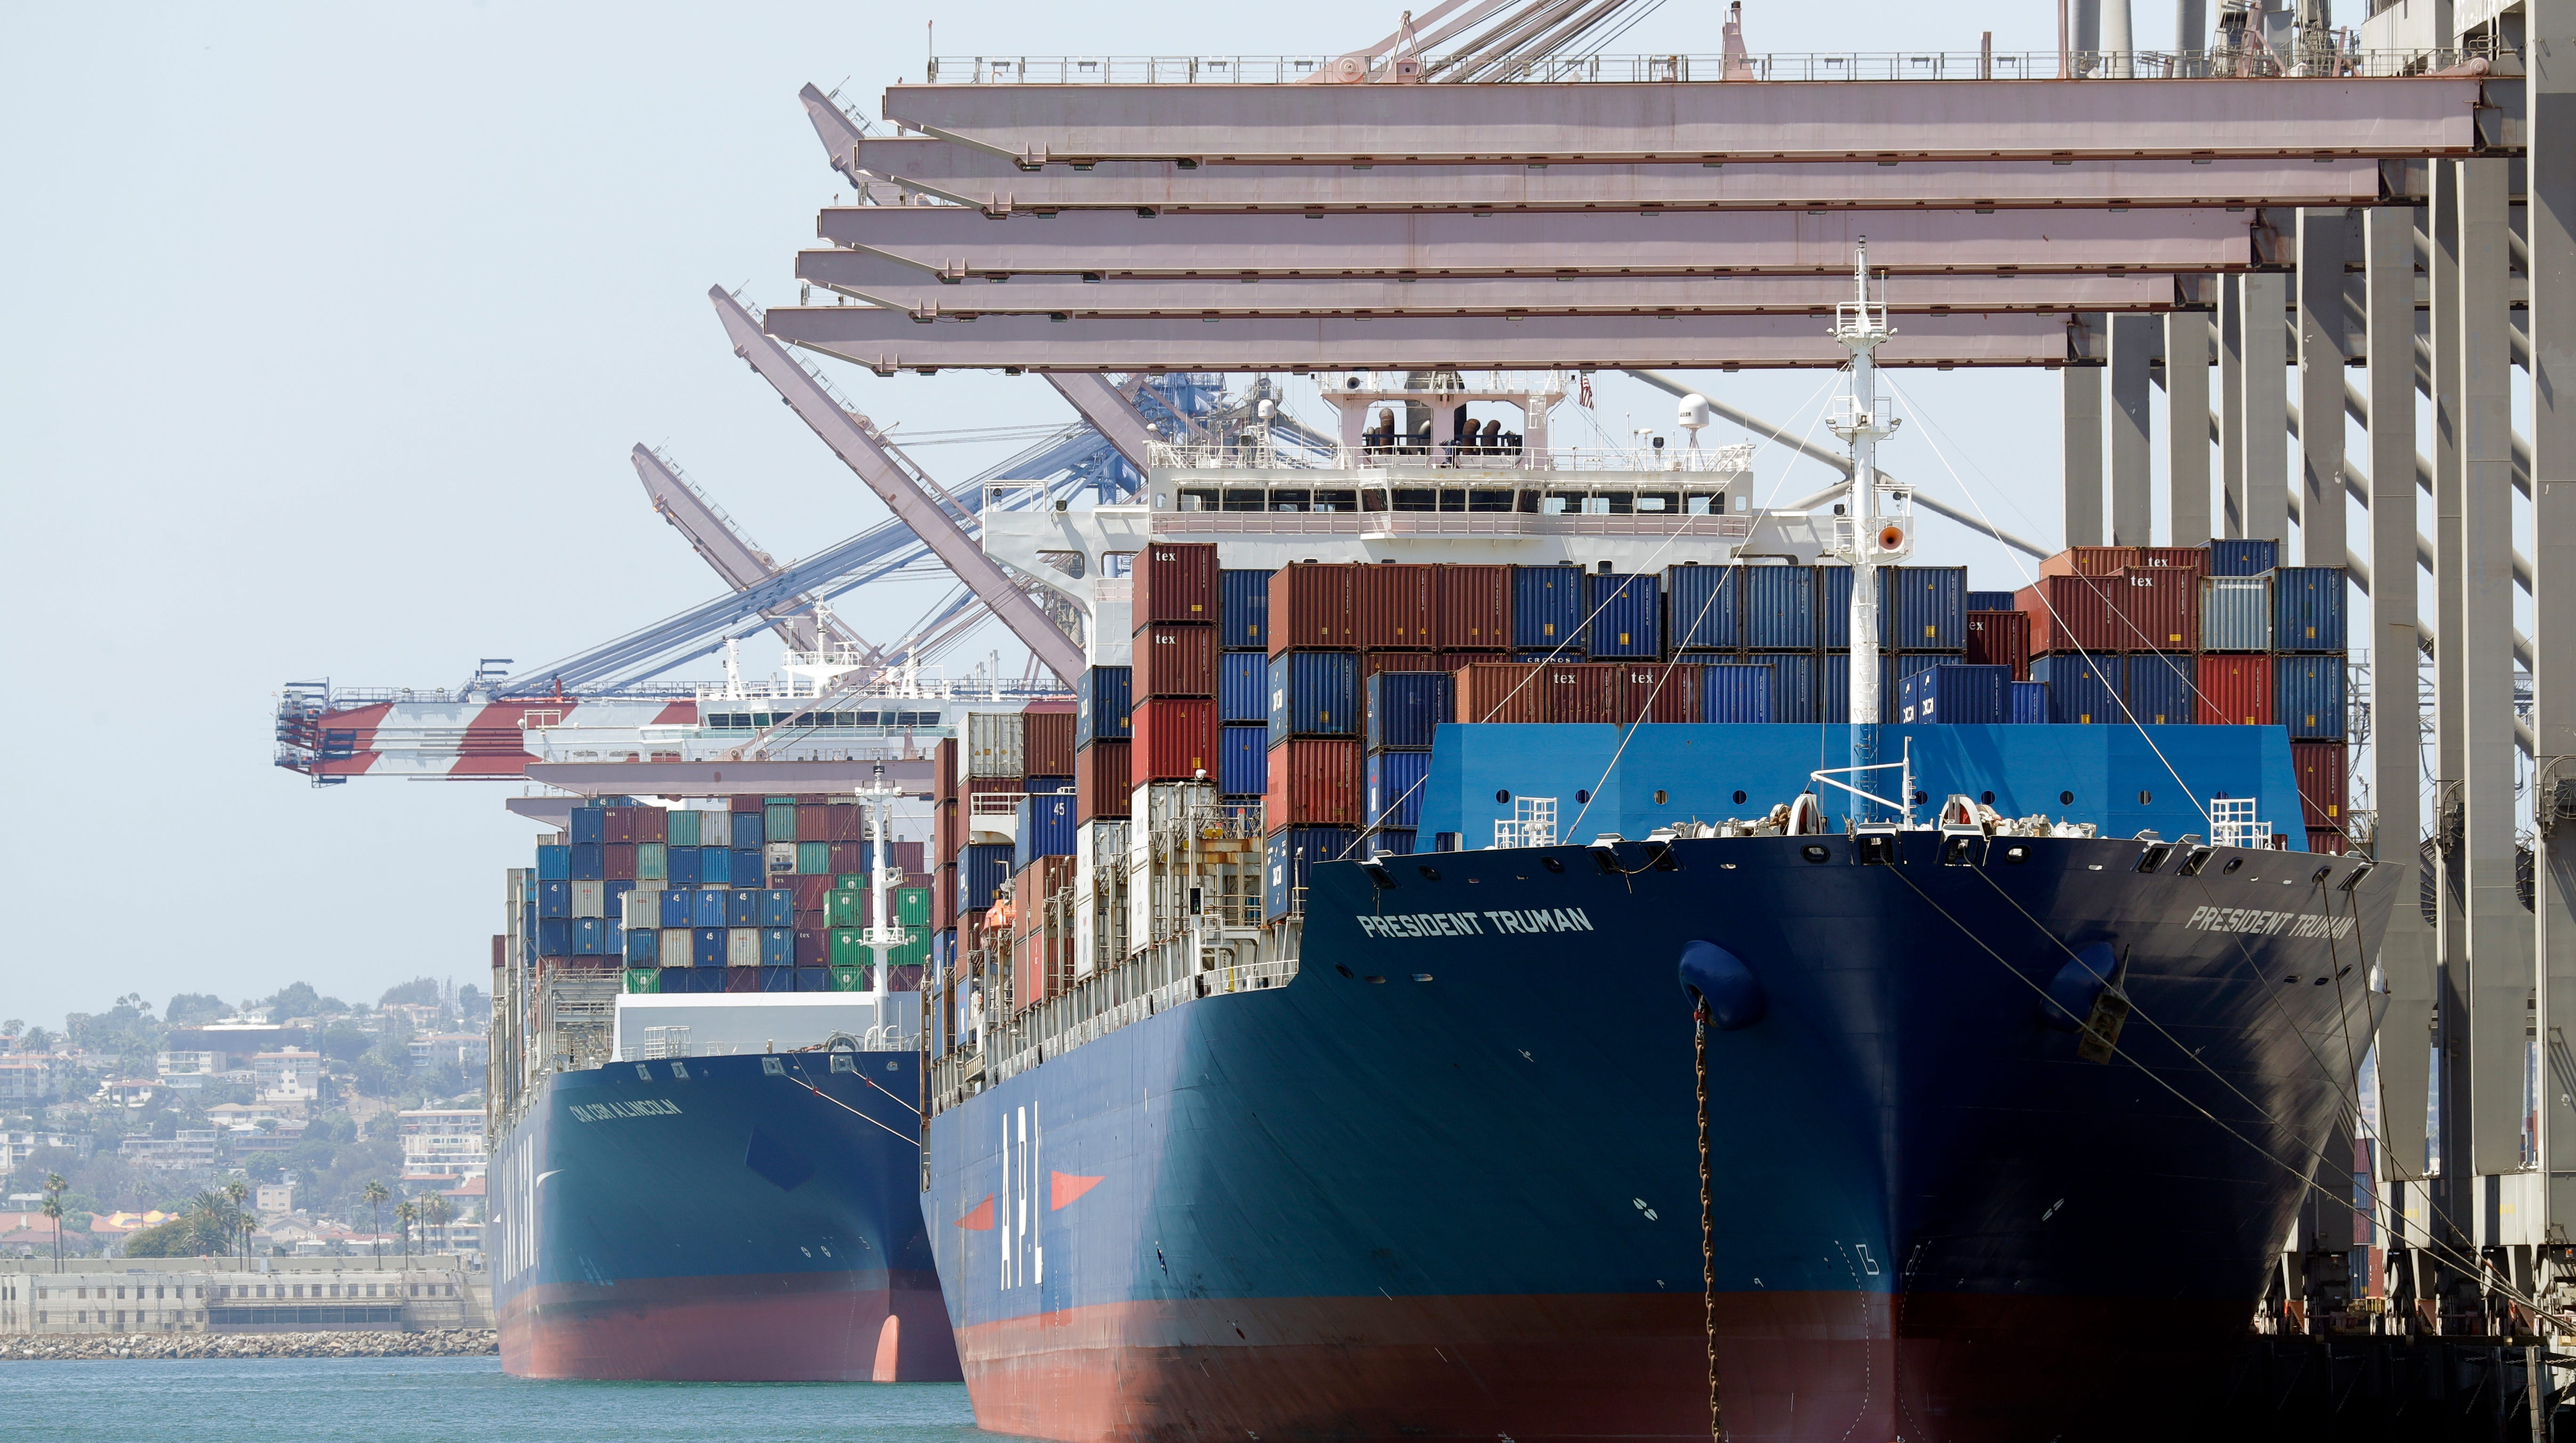 Ocean shipping in Tucson? Yes, it's real. Why don't more people know about it?